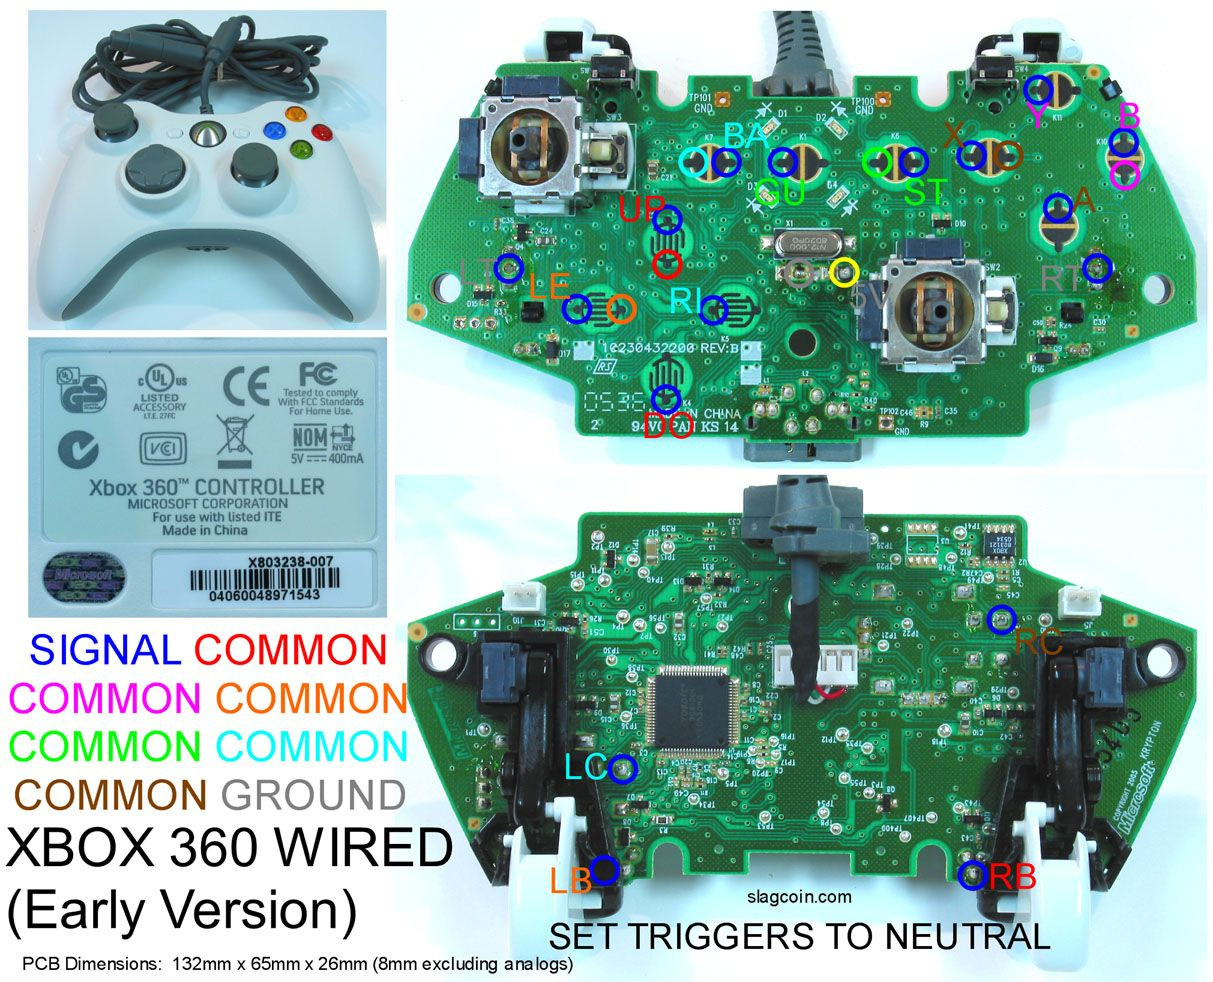 xbox 360 wireless controller circuit board diagram xbox 360 wireless xbox 360 slim wiring diagram xbox 360 wiring diagram [ 1213 x 982 Pixel ]